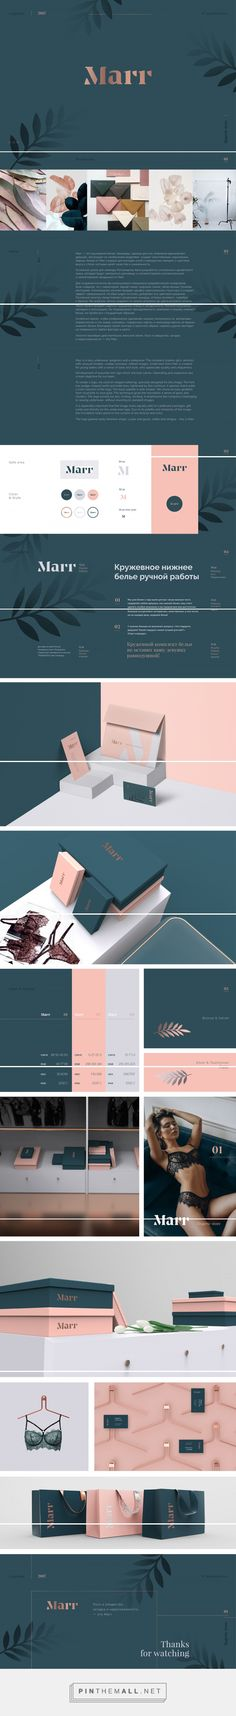 Marr Lingerie Branding and Packaging by Logo Machine | Fivestar Branding Agency – Design and Branding Agency & Curated Inspiration Gallery #branding #lingeriebranding #brand #packaging #packagingdesign #design #designinspiration